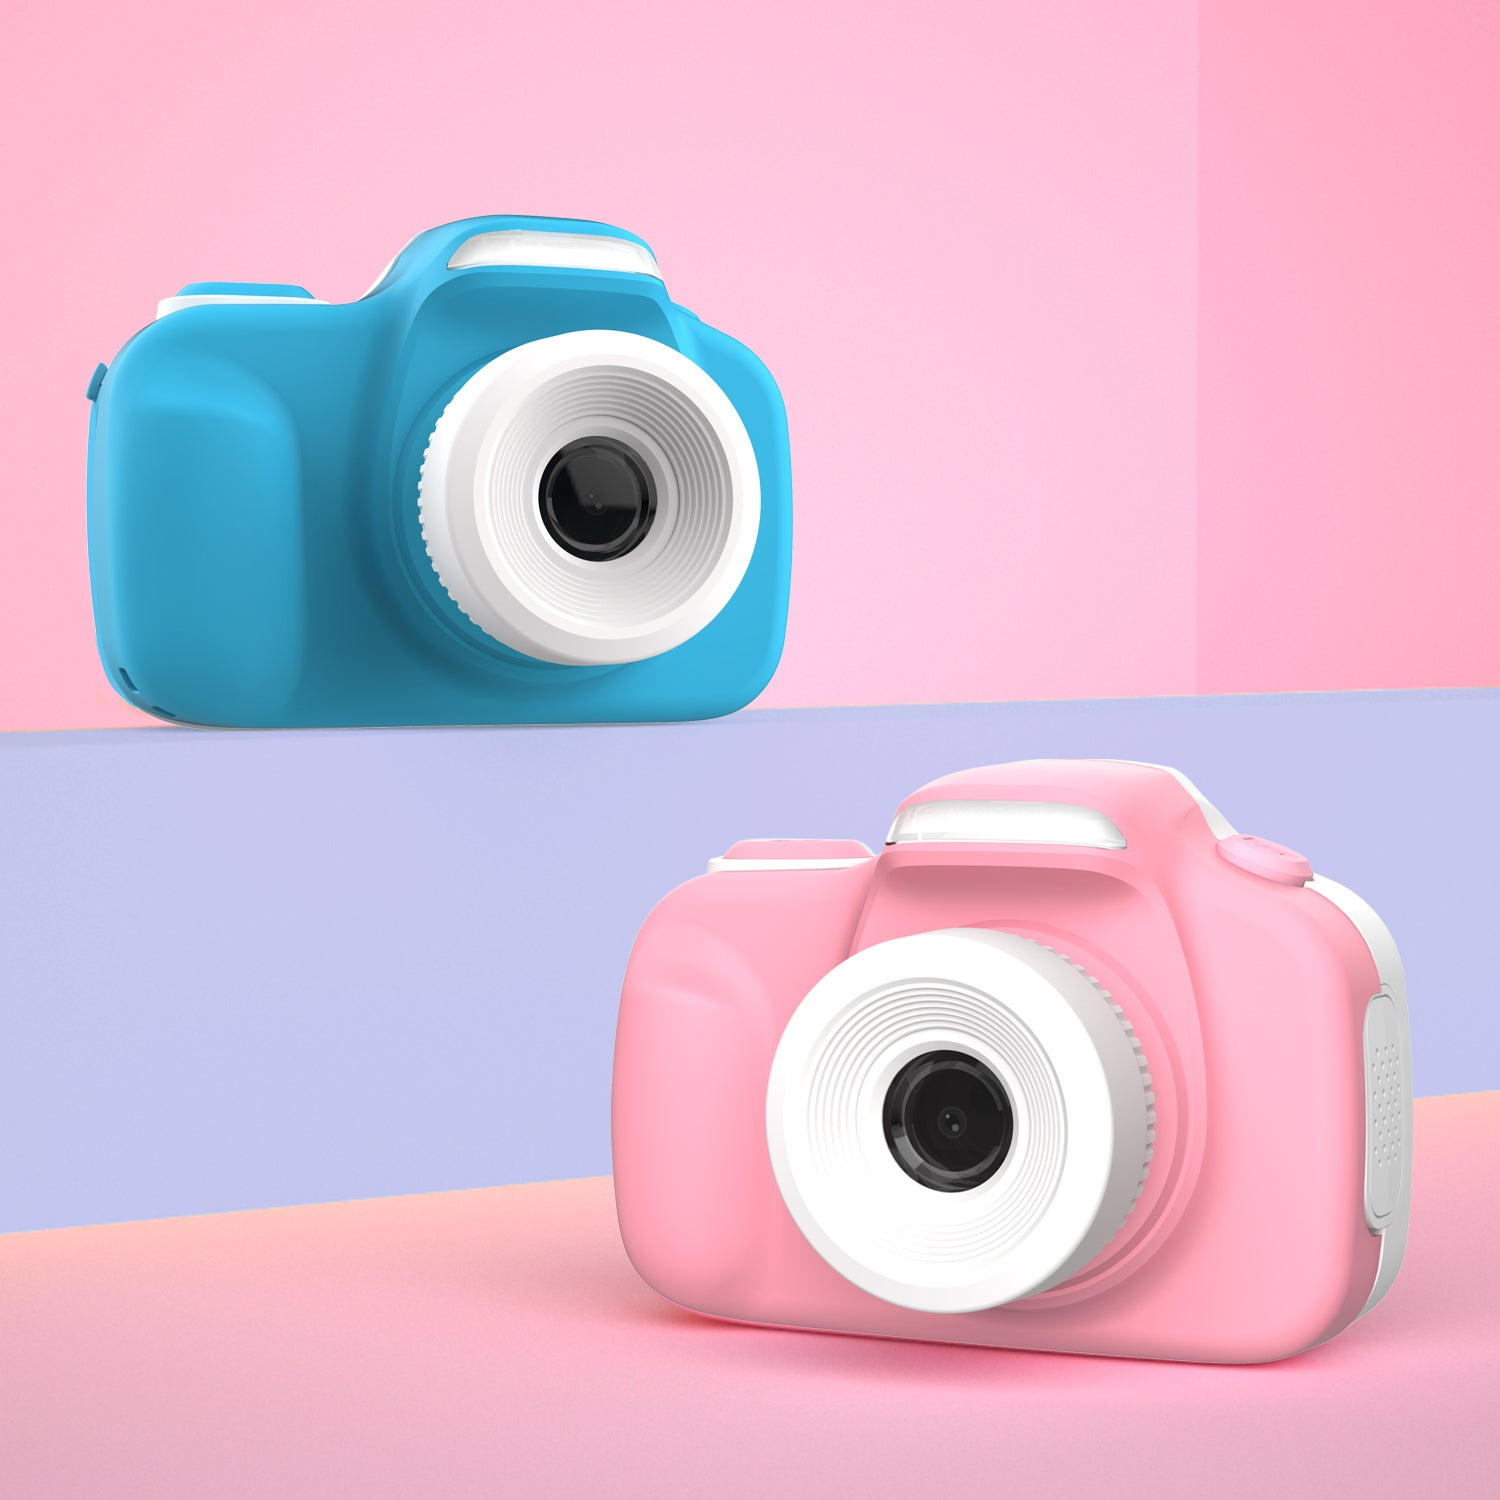 myFirst Camera 3 - 16MP Mini Camera for kids with selfie lens